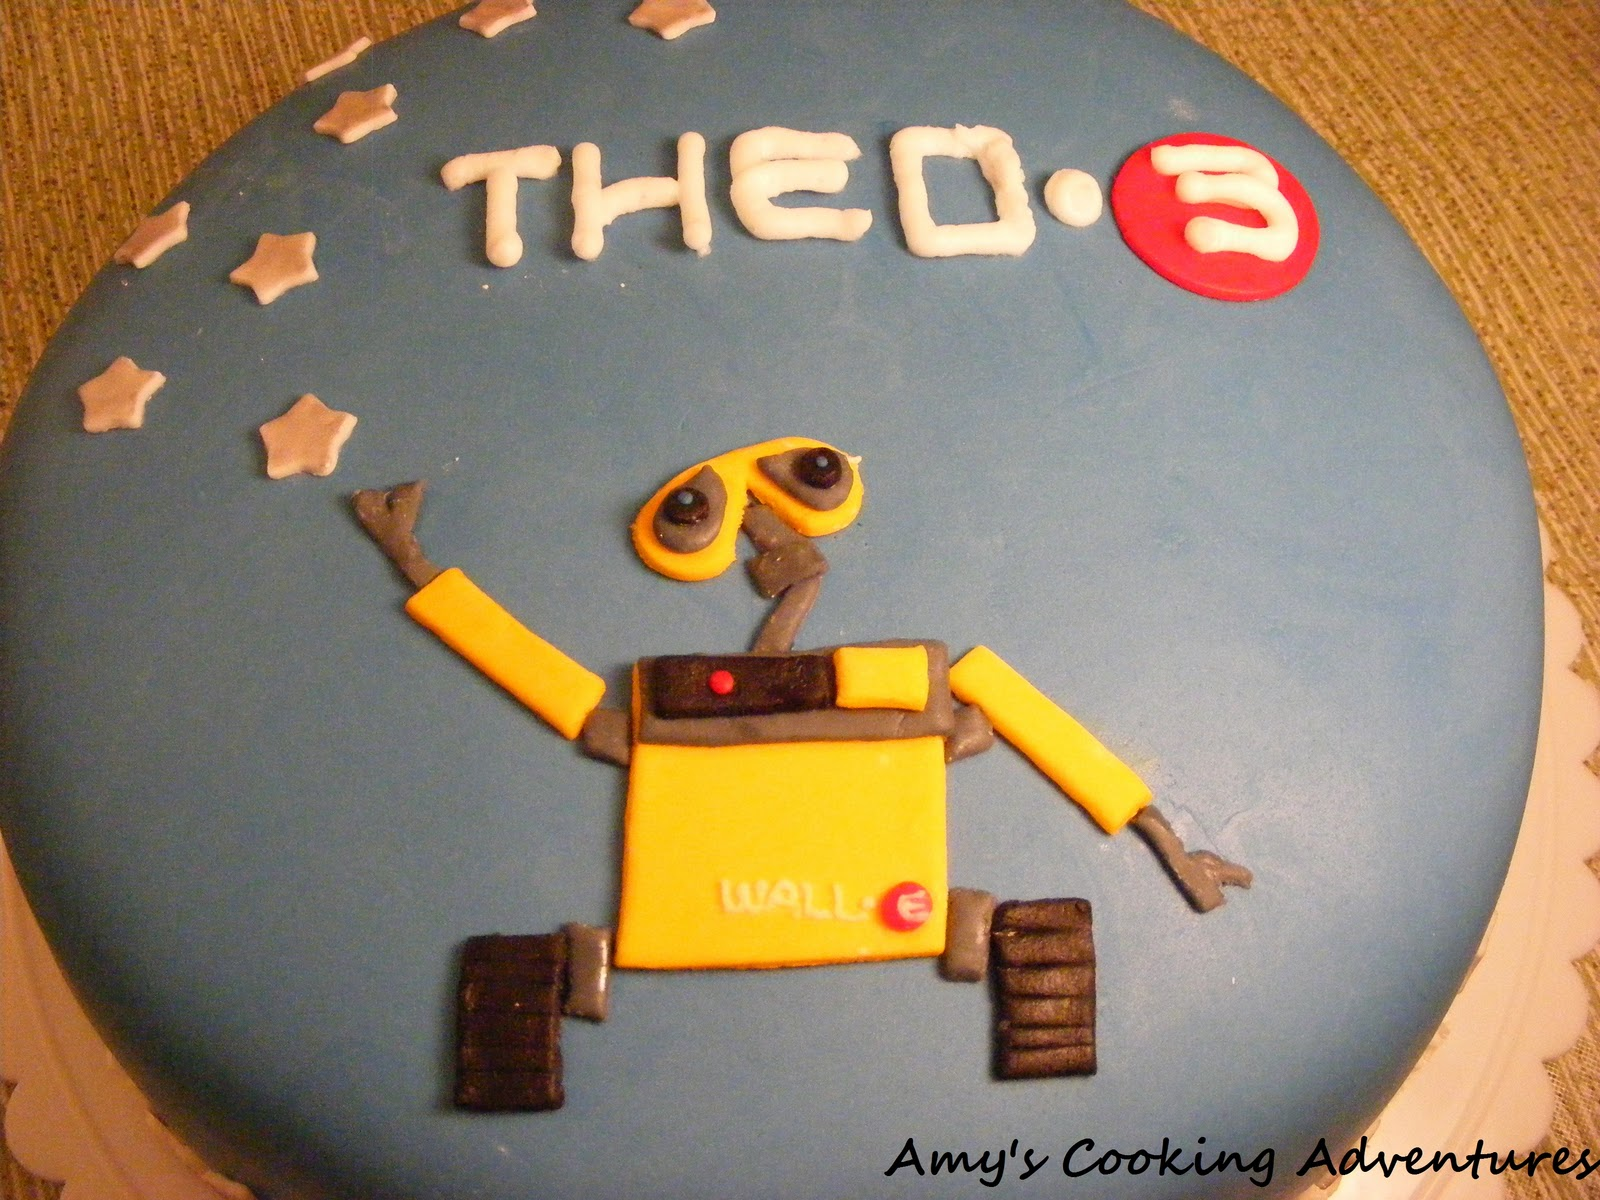 Amys Confectionery Adventures Wall E Cake